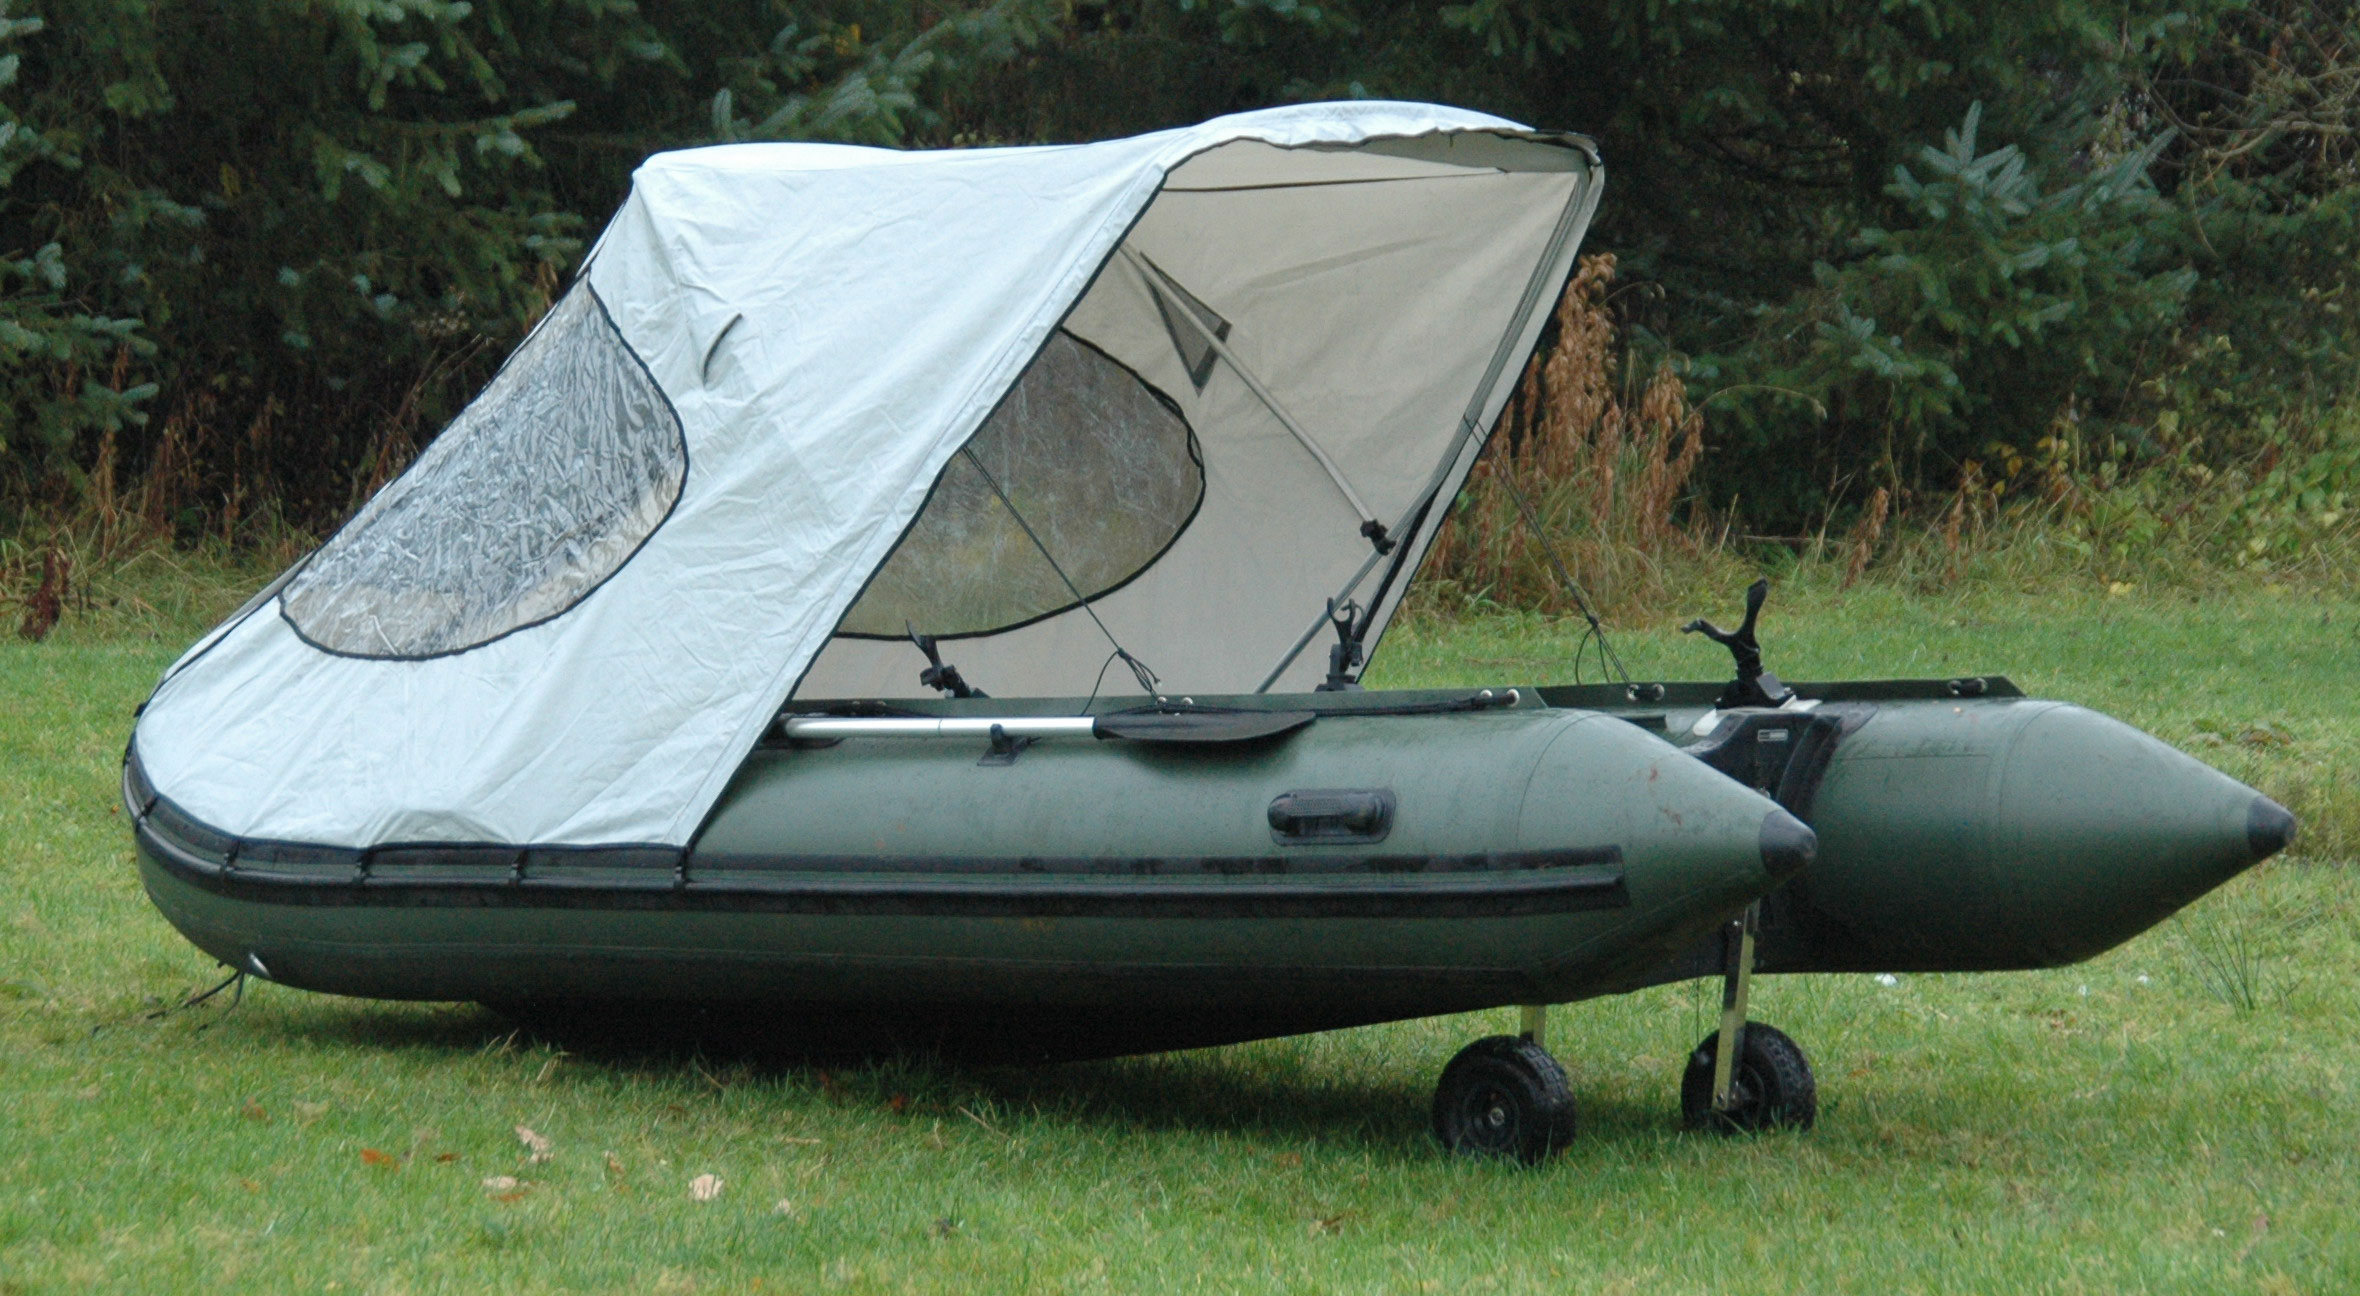 BISON MARINE BIMINI COCKPIT TENT CANOPY FOR INFLATABLE ...